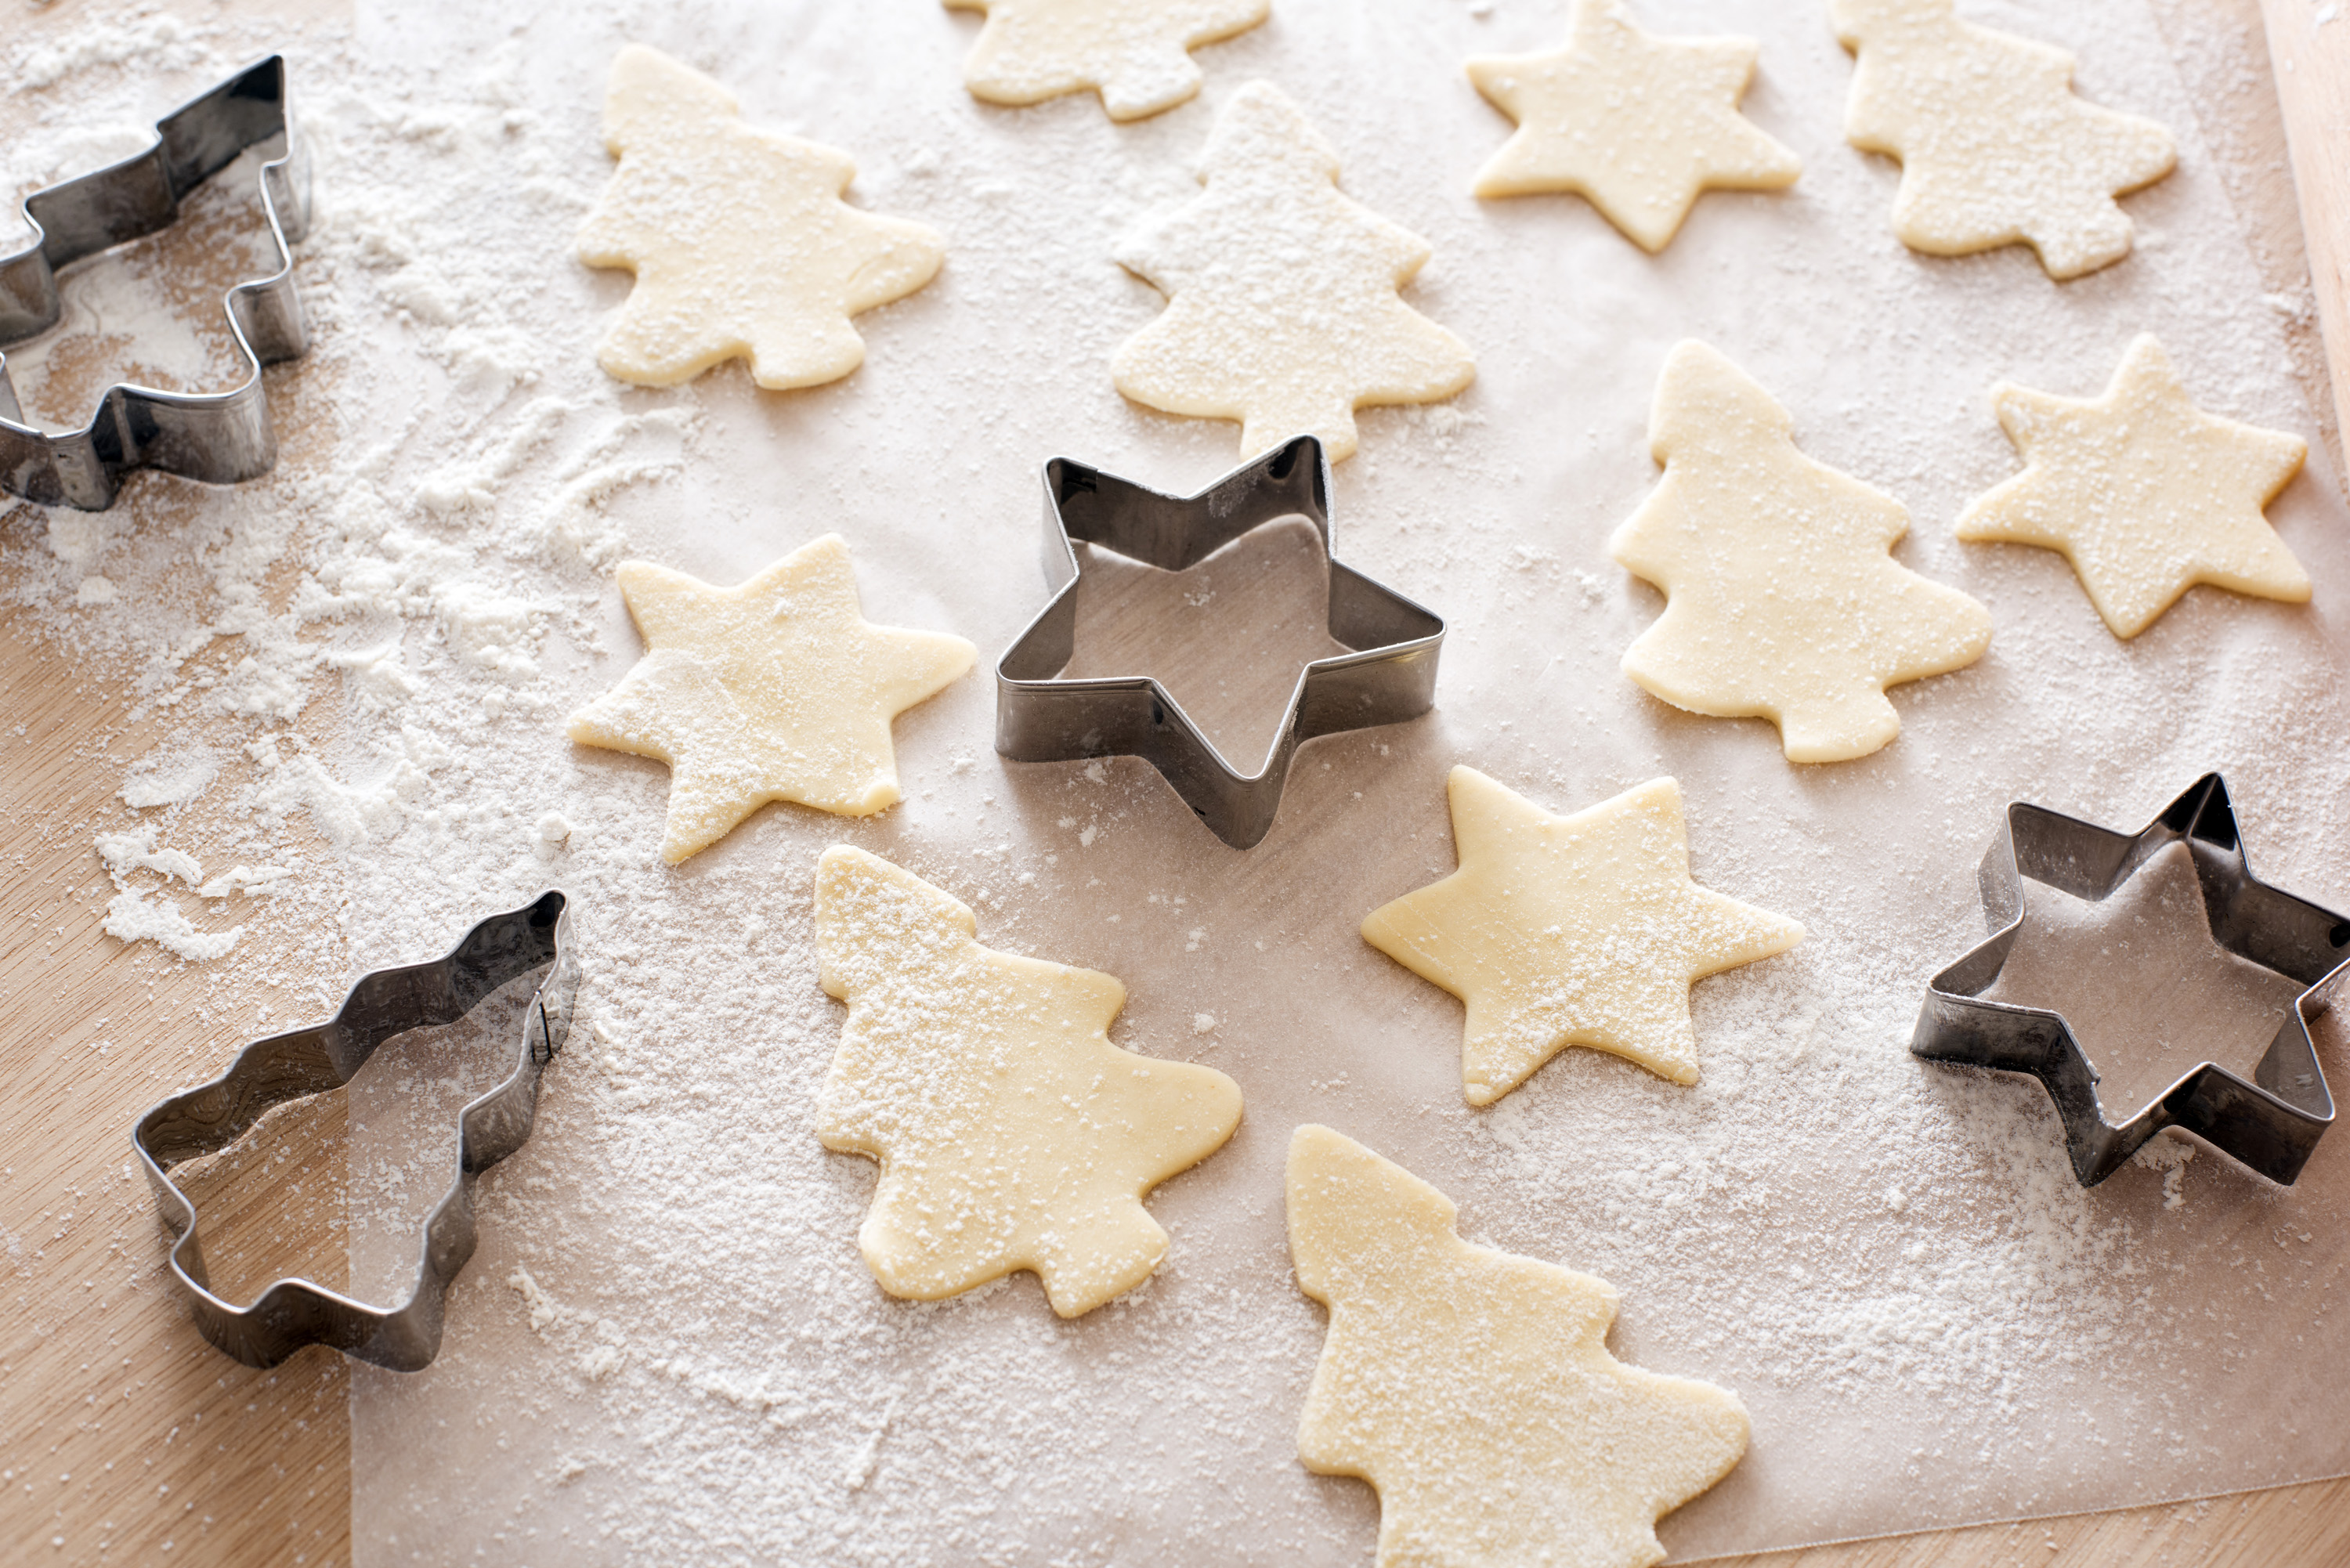 Homemade Christmas Biscuits 9617 Stockarch Free Stock Photos